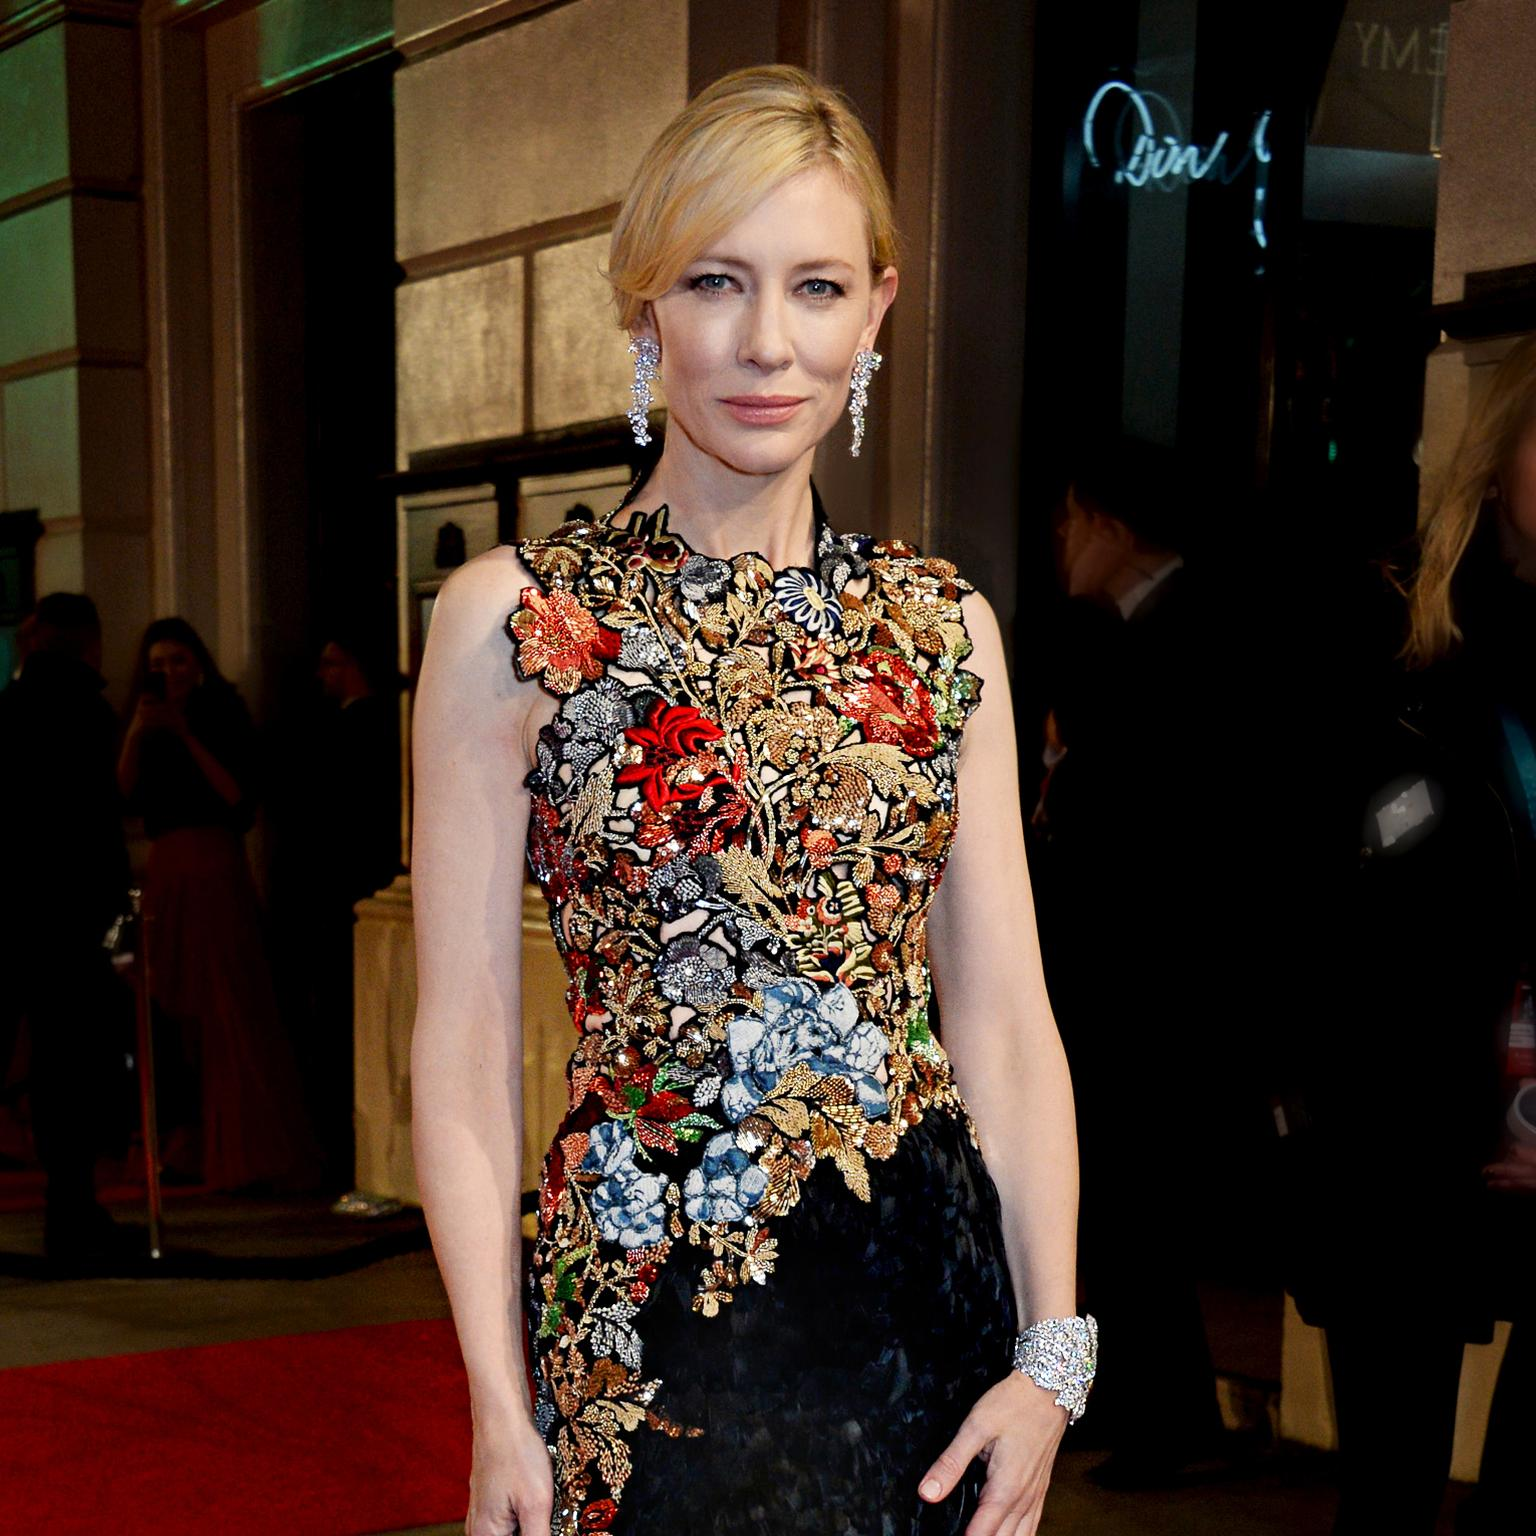 Cate Blanchett wearing tiffany earrings and bracelet